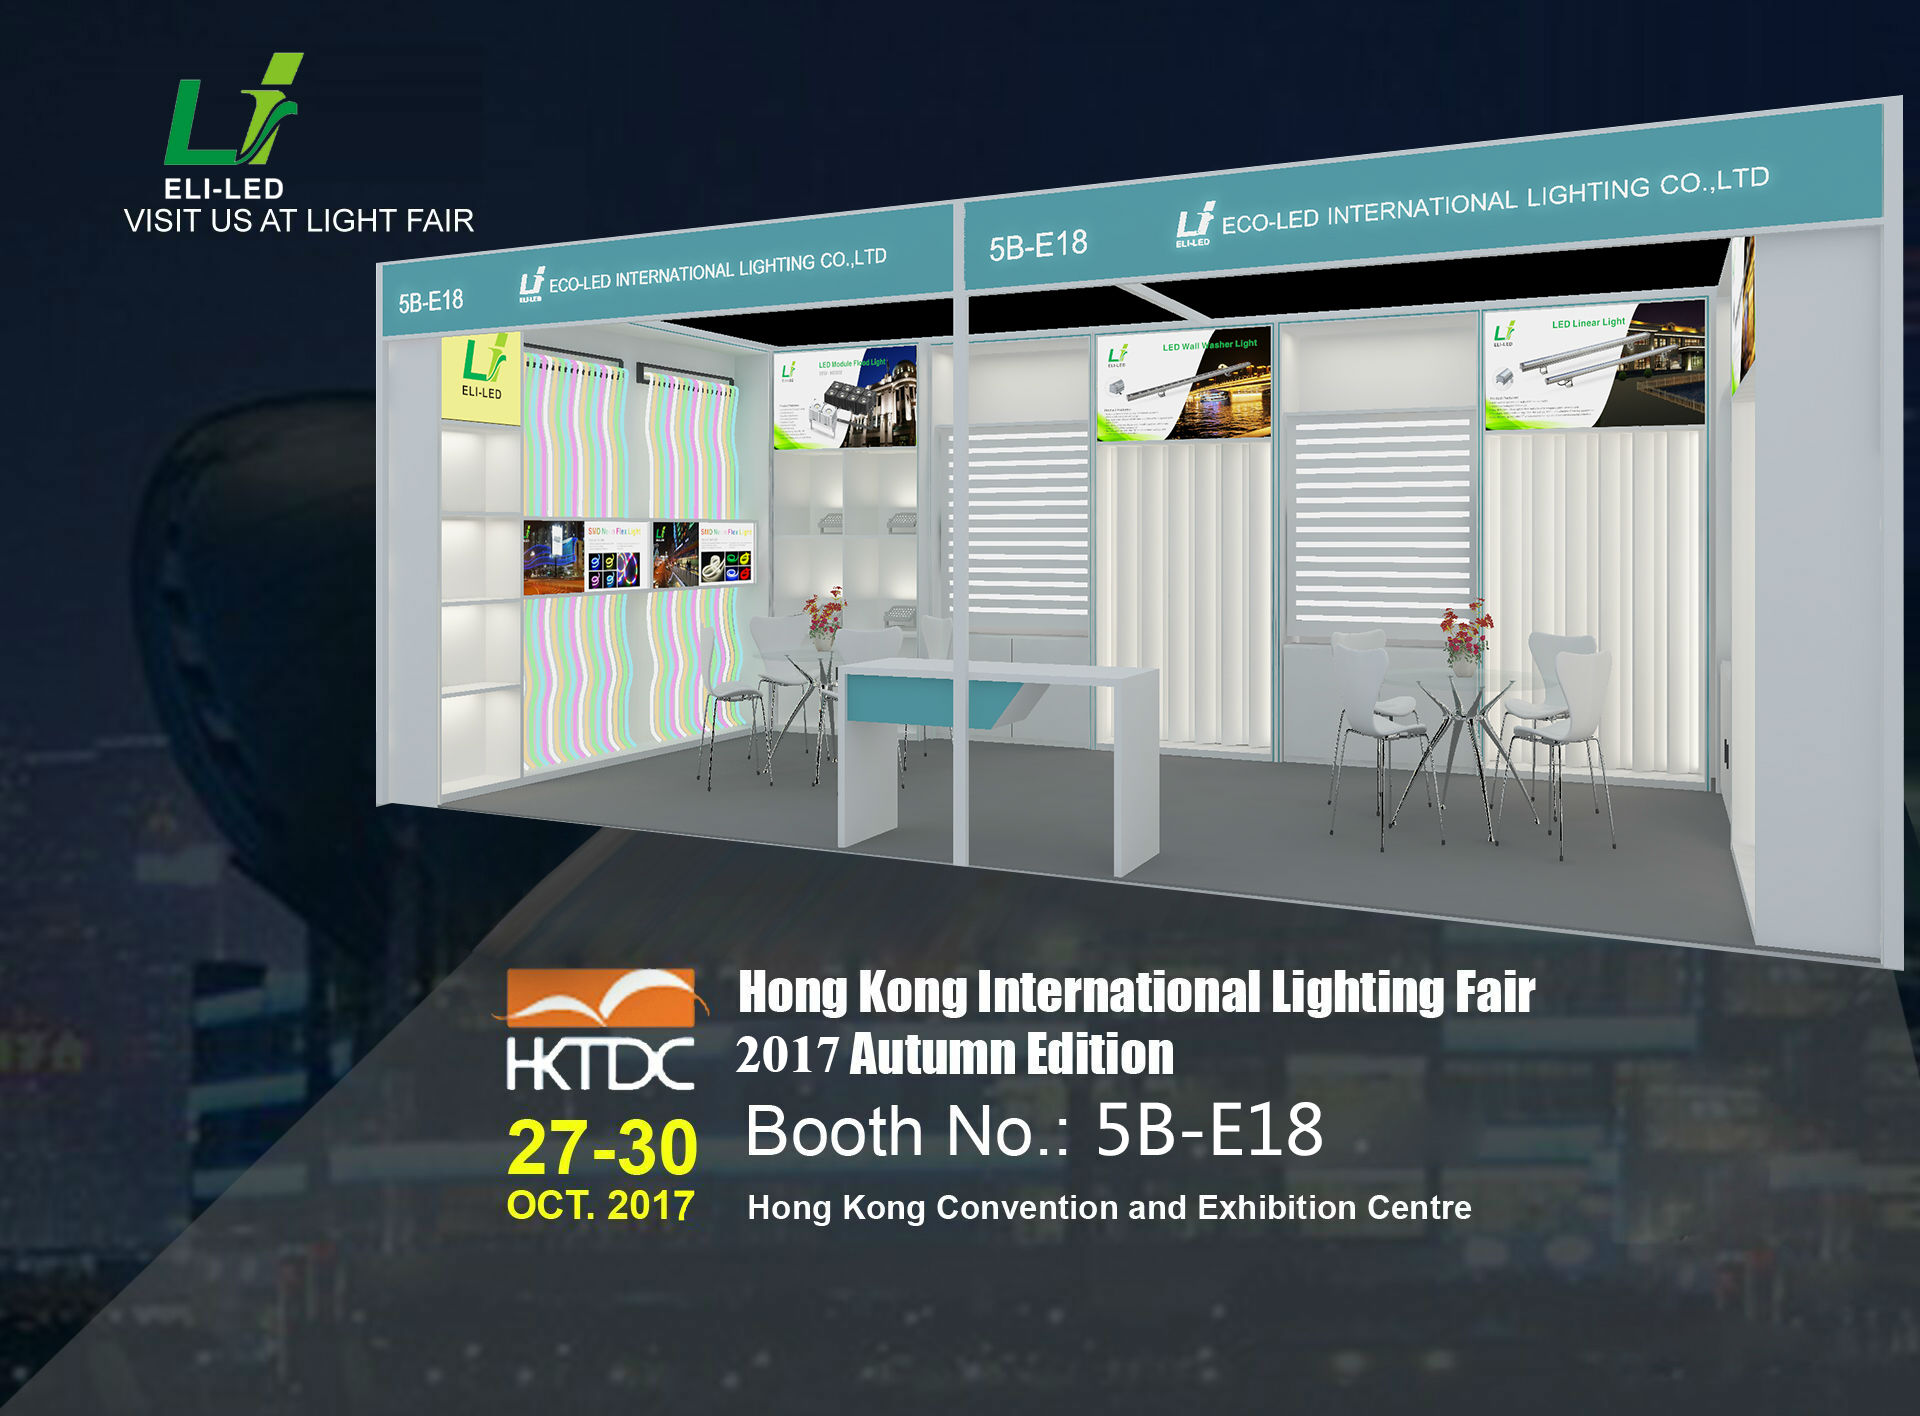 Come and Meet Us at Our Booth 5B-E18